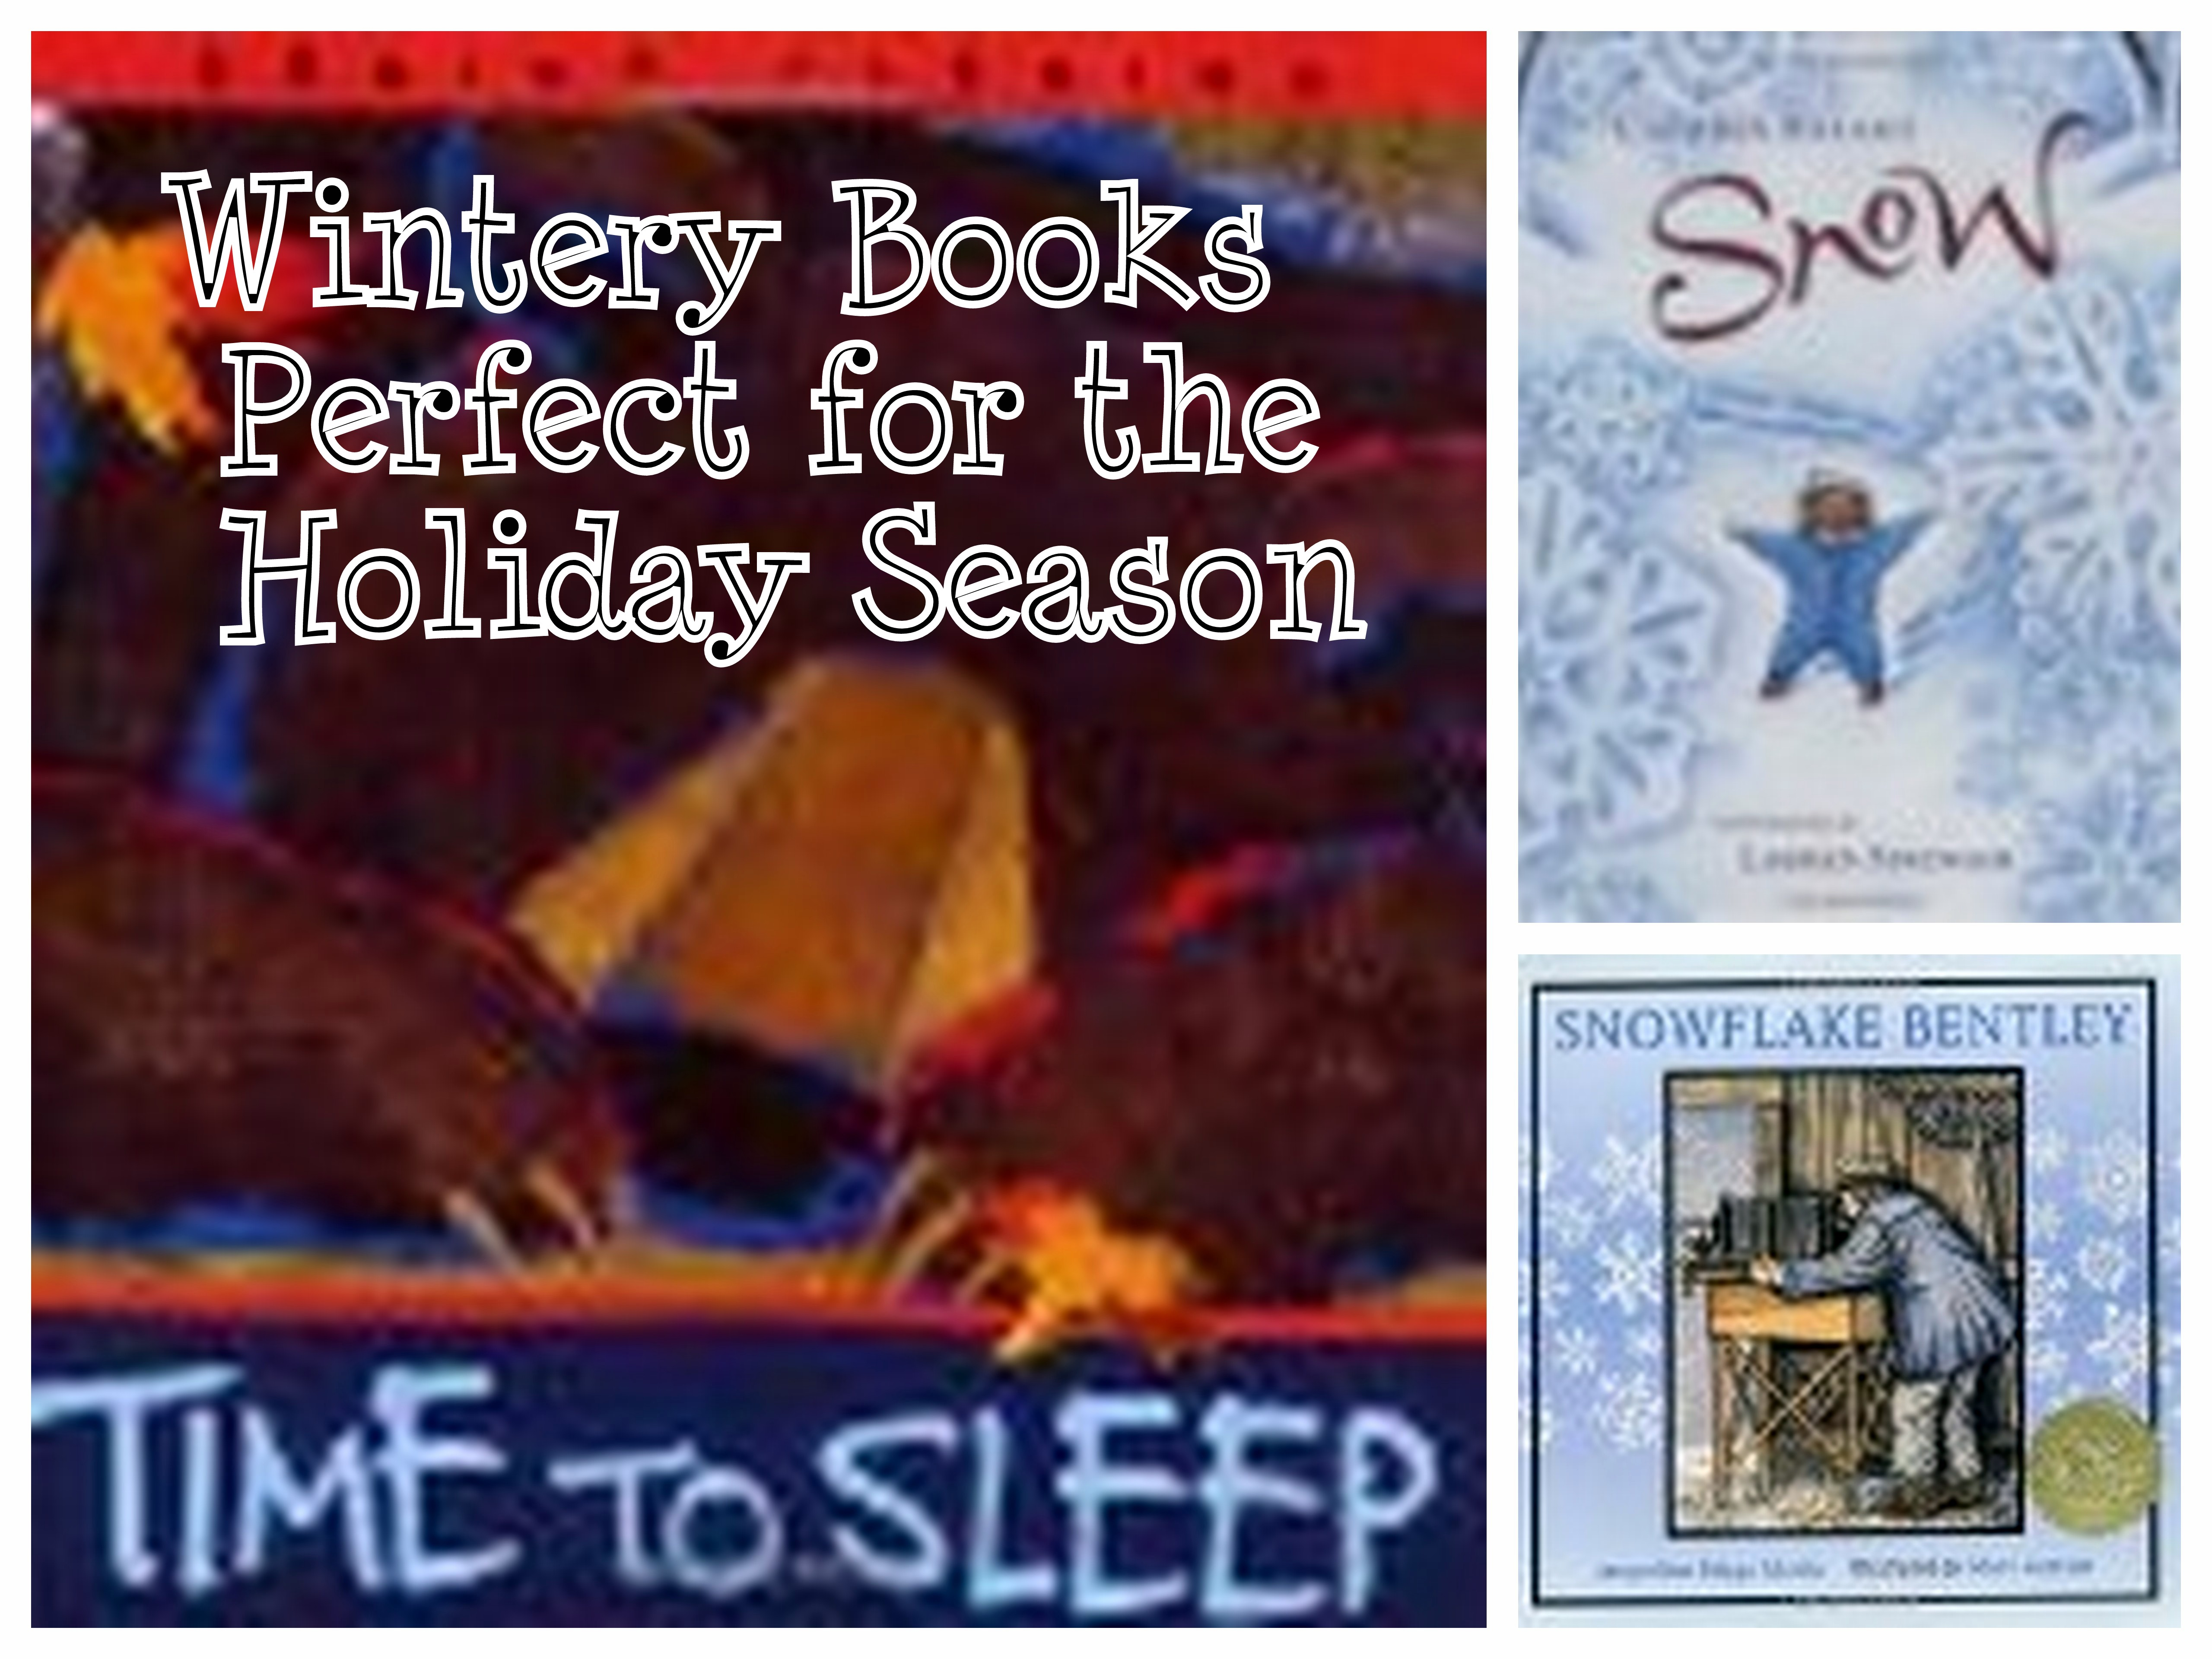 Wintery Books Perfect for the Holiday Season